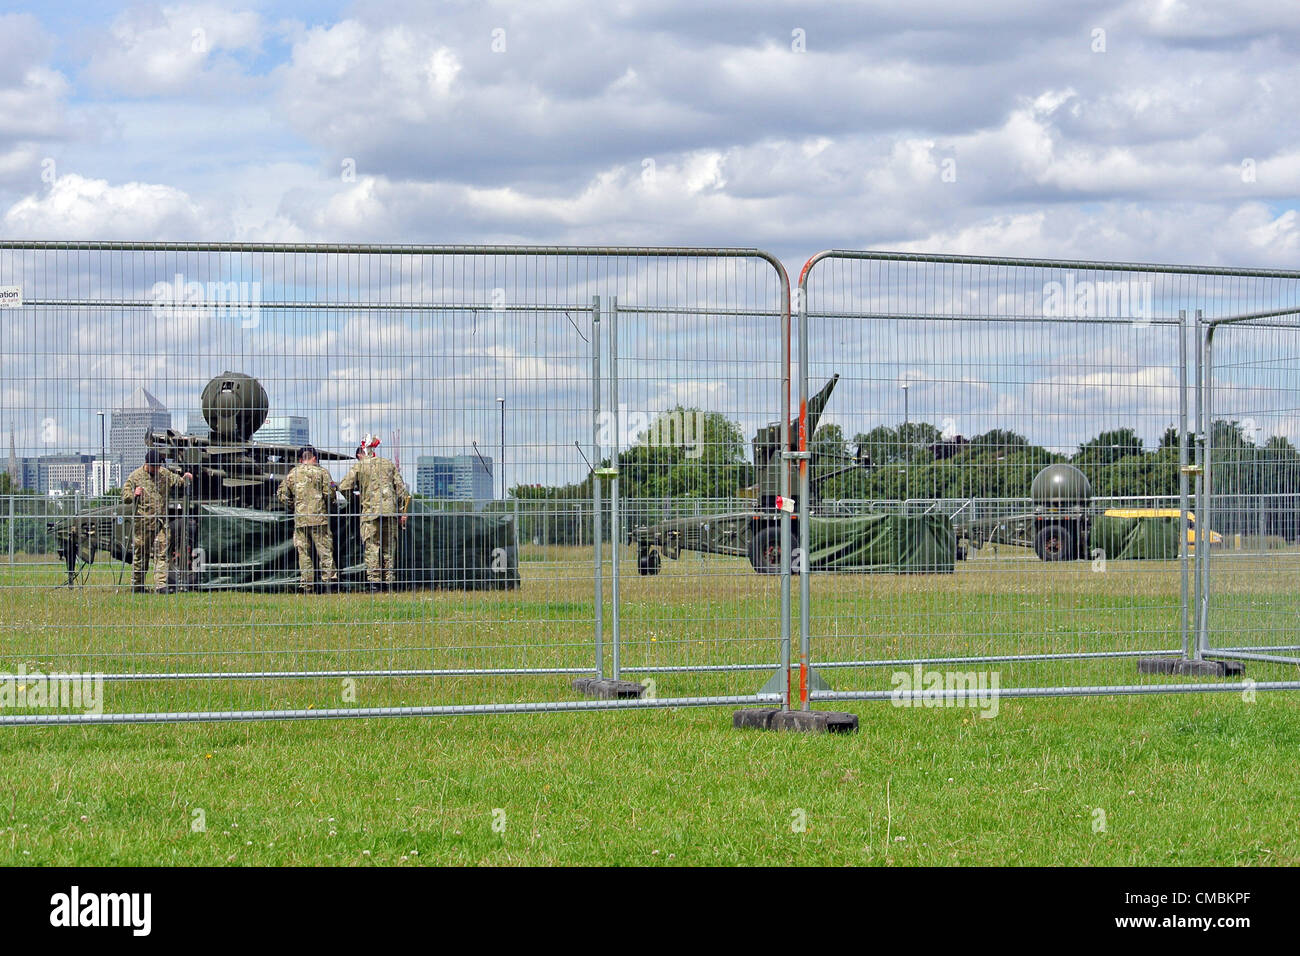 London, UK. 12th July 2012. Rapier missiles for the defence of the Olympic Games return to Blackheath Common and - Stock Image